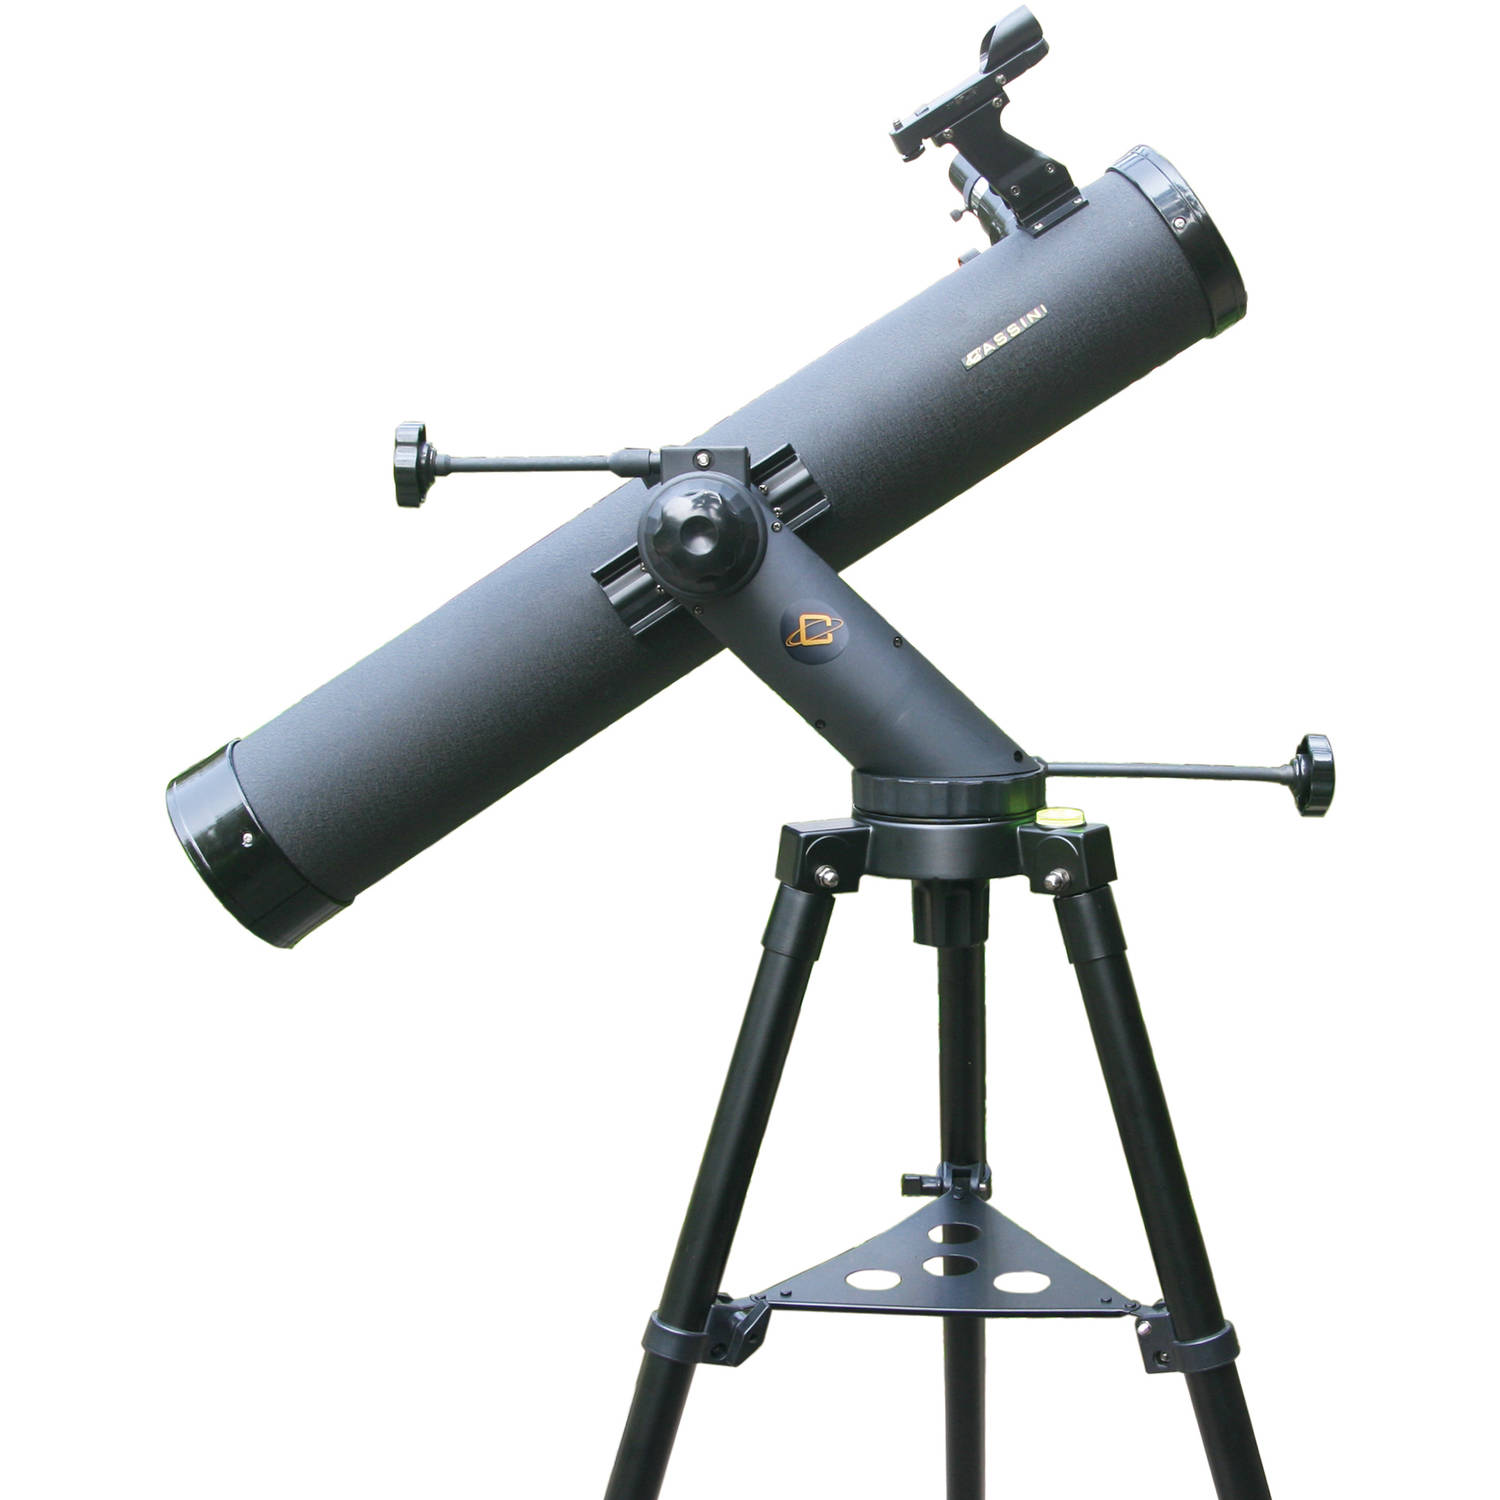 Cassini 800mm x 80mm Tracker Series Astronomical Reflector Telescope with Tripod - Black, C-80080TR